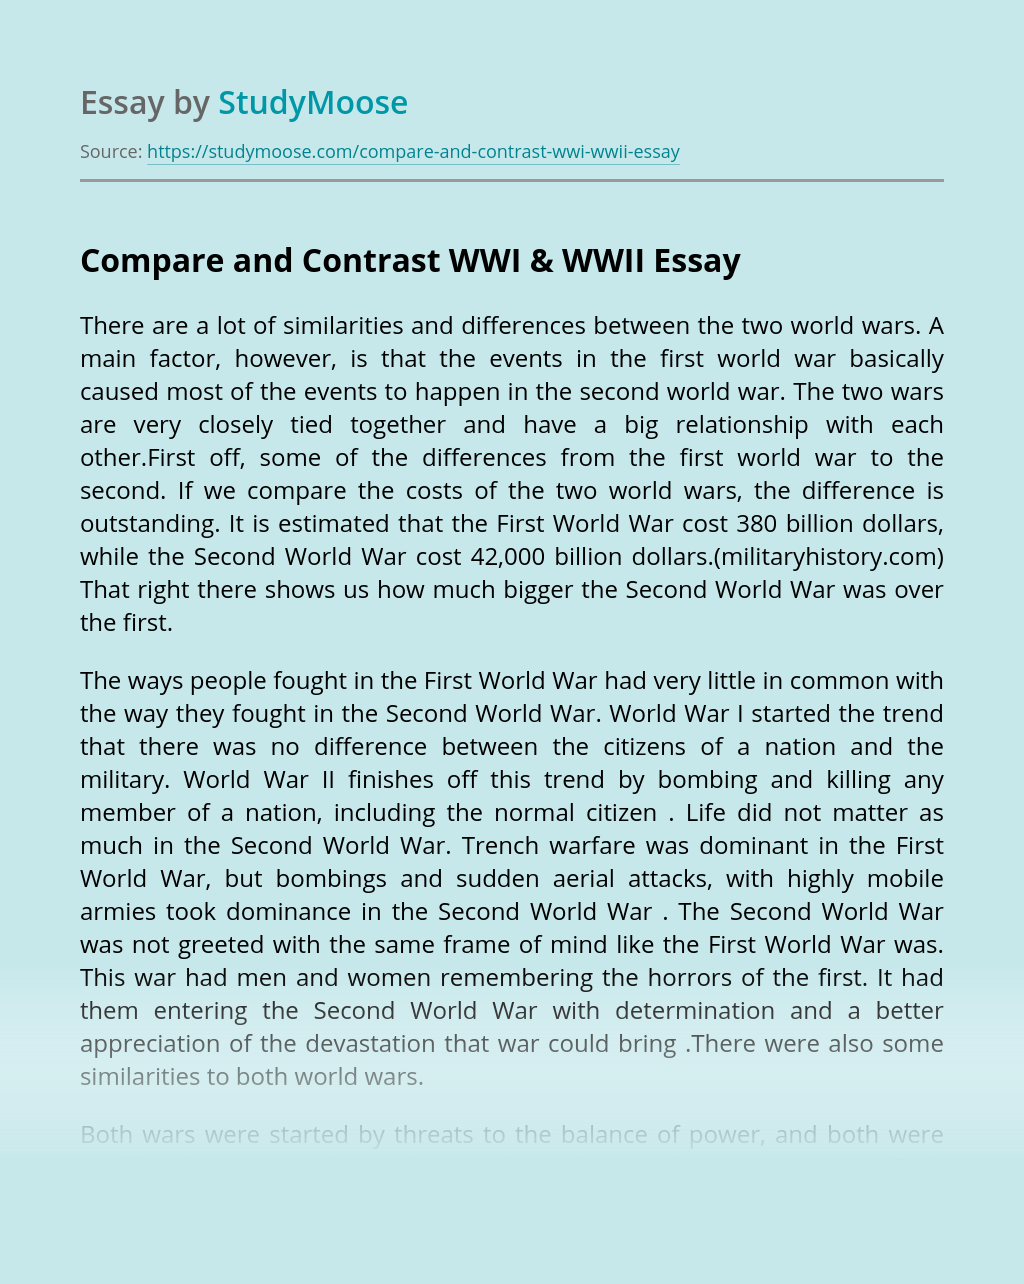 Compare and Contrast WWI & WWII